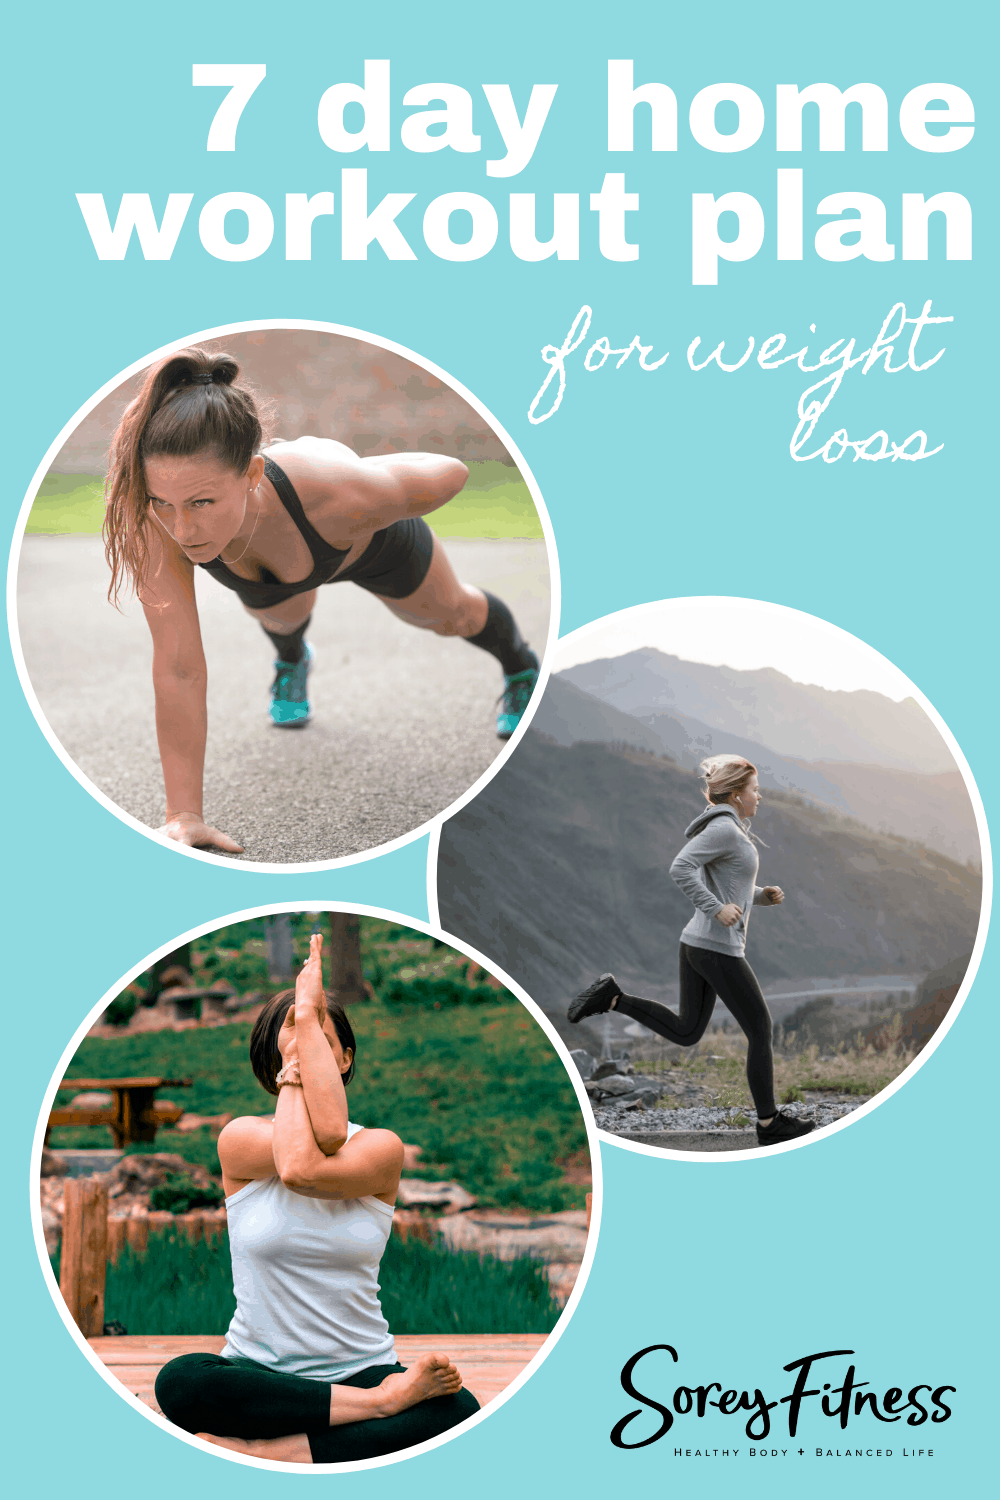 fitness image collage for home workout plan